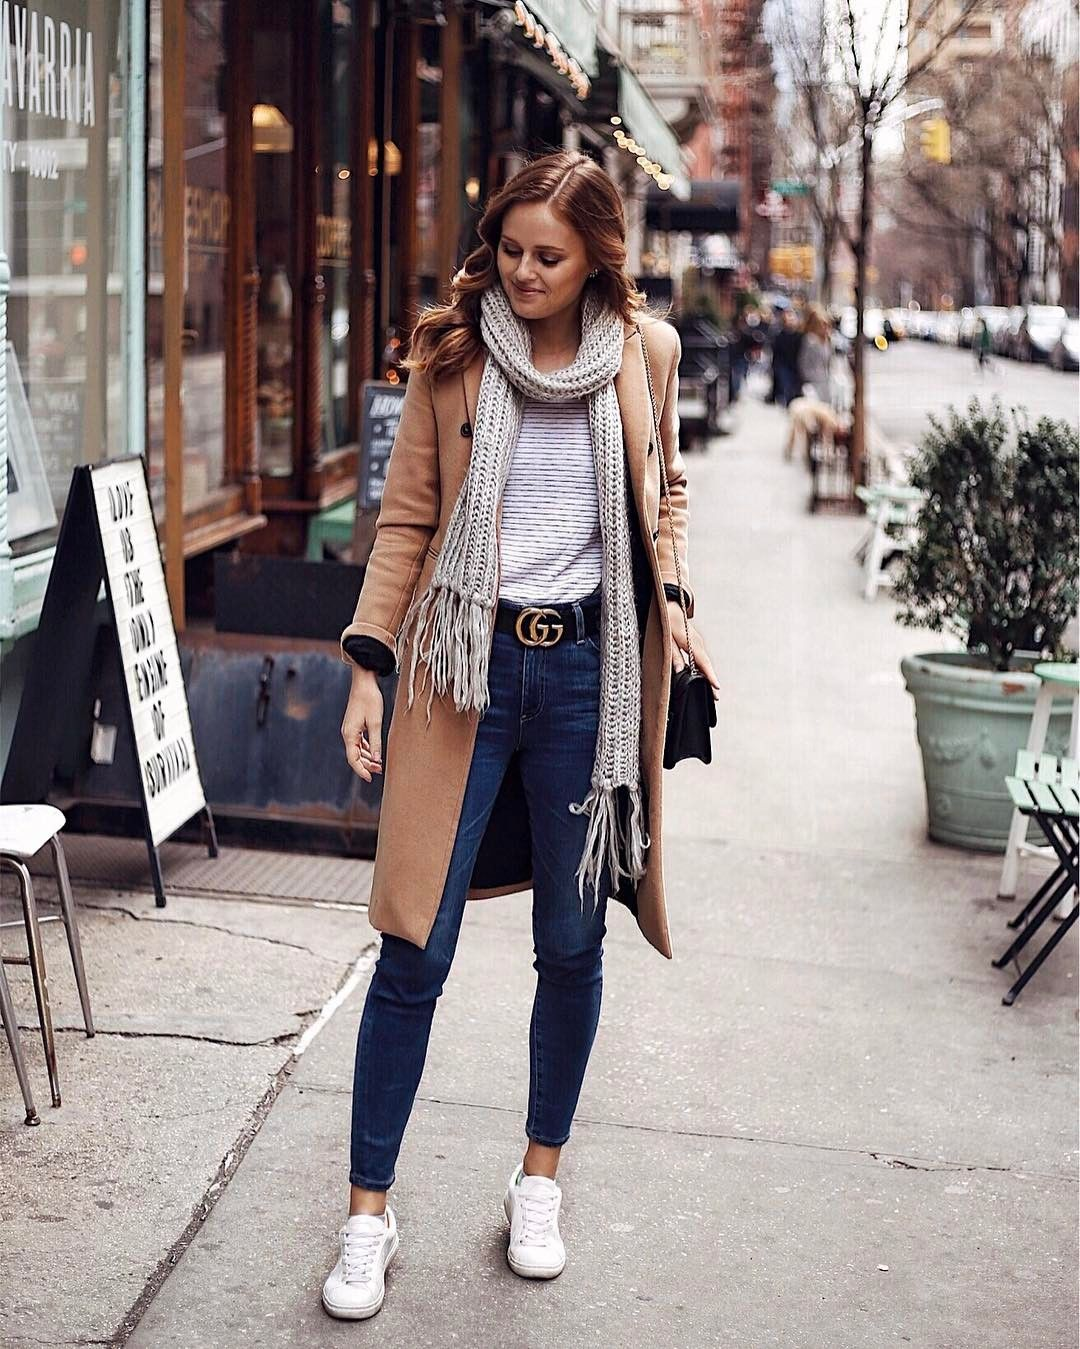 Winter Street Style Fashion Ideas For Women 2020: Casual Layered Winter Look With Sneakers